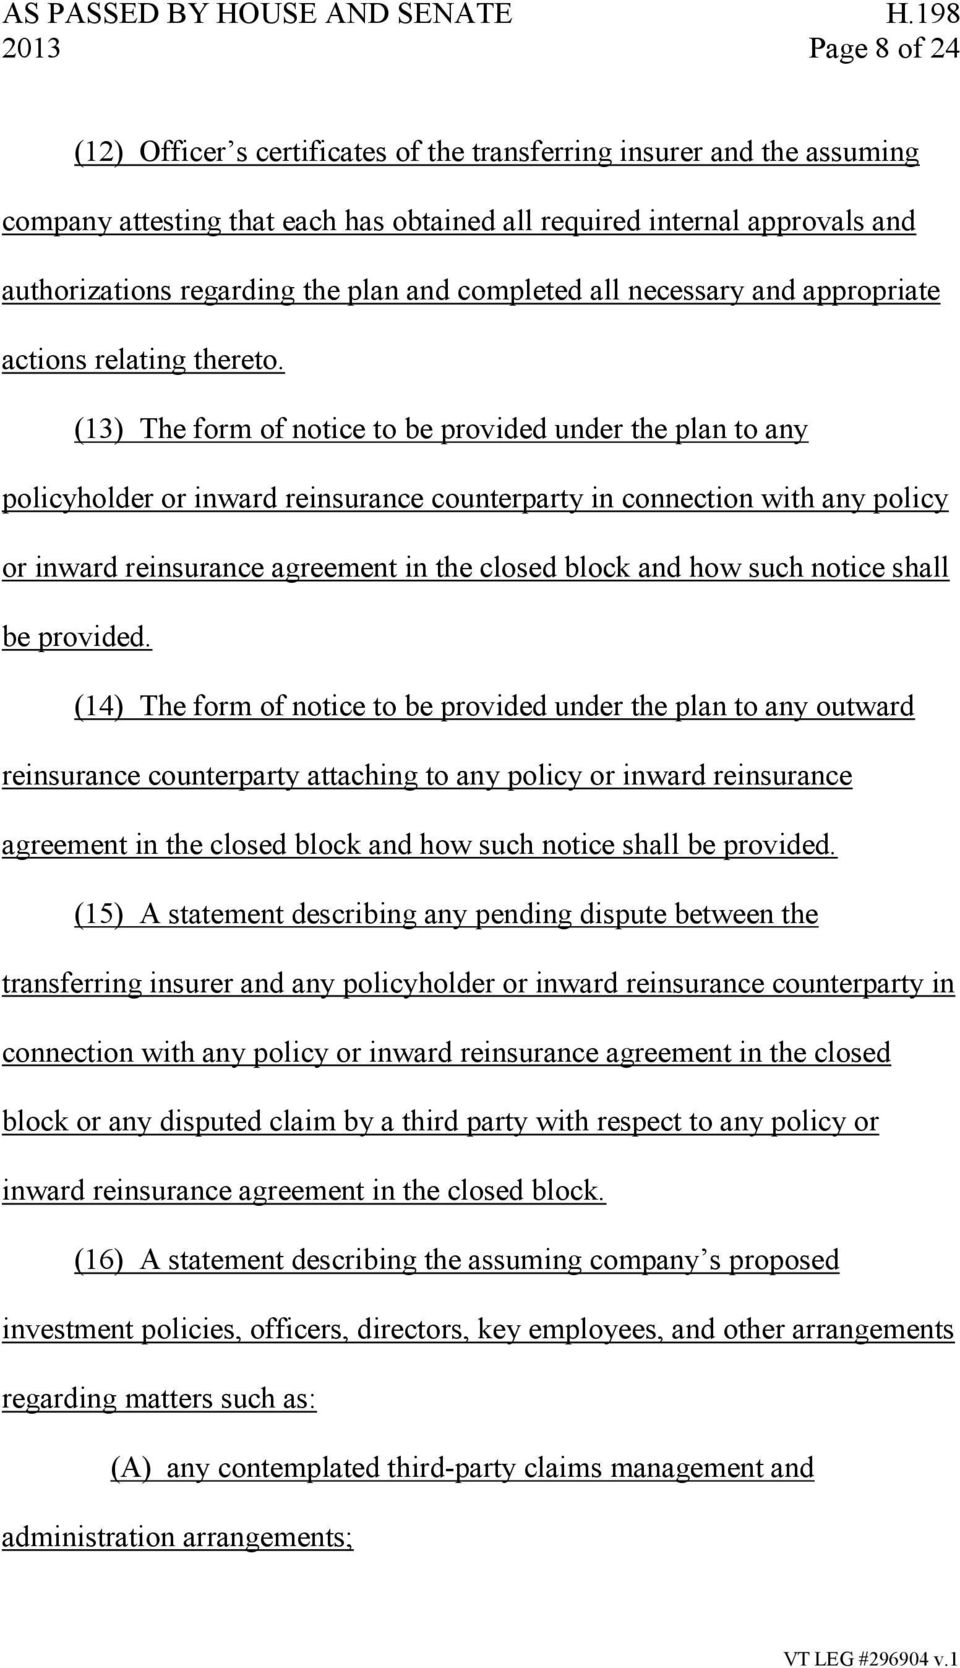 (13) The form of notice to be provided under the plan to any policyholder or inward reinsurance counterparty in connection with any policy or inward reinsurance agreement in the closed block and how